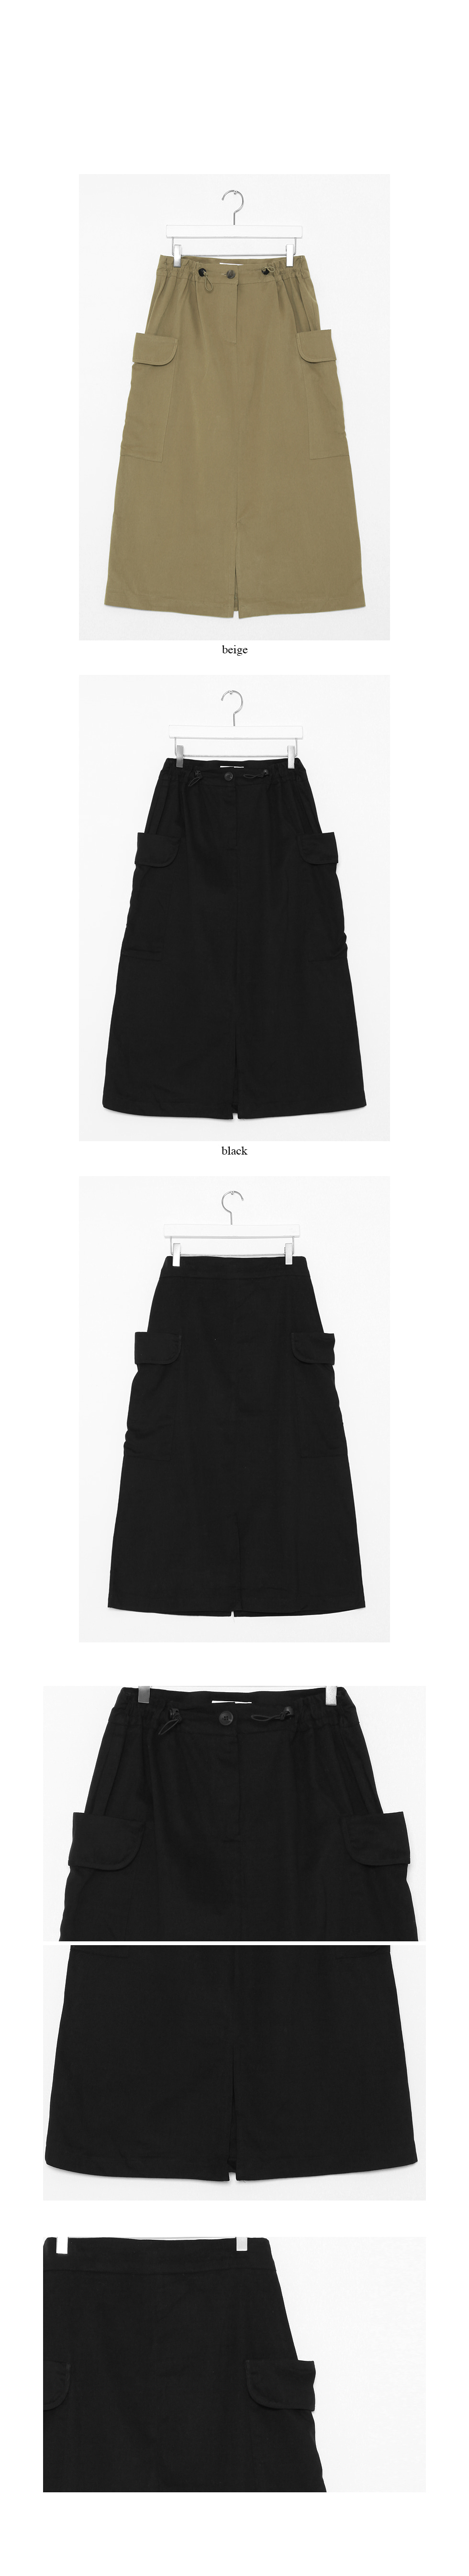 cargo string simple skirts